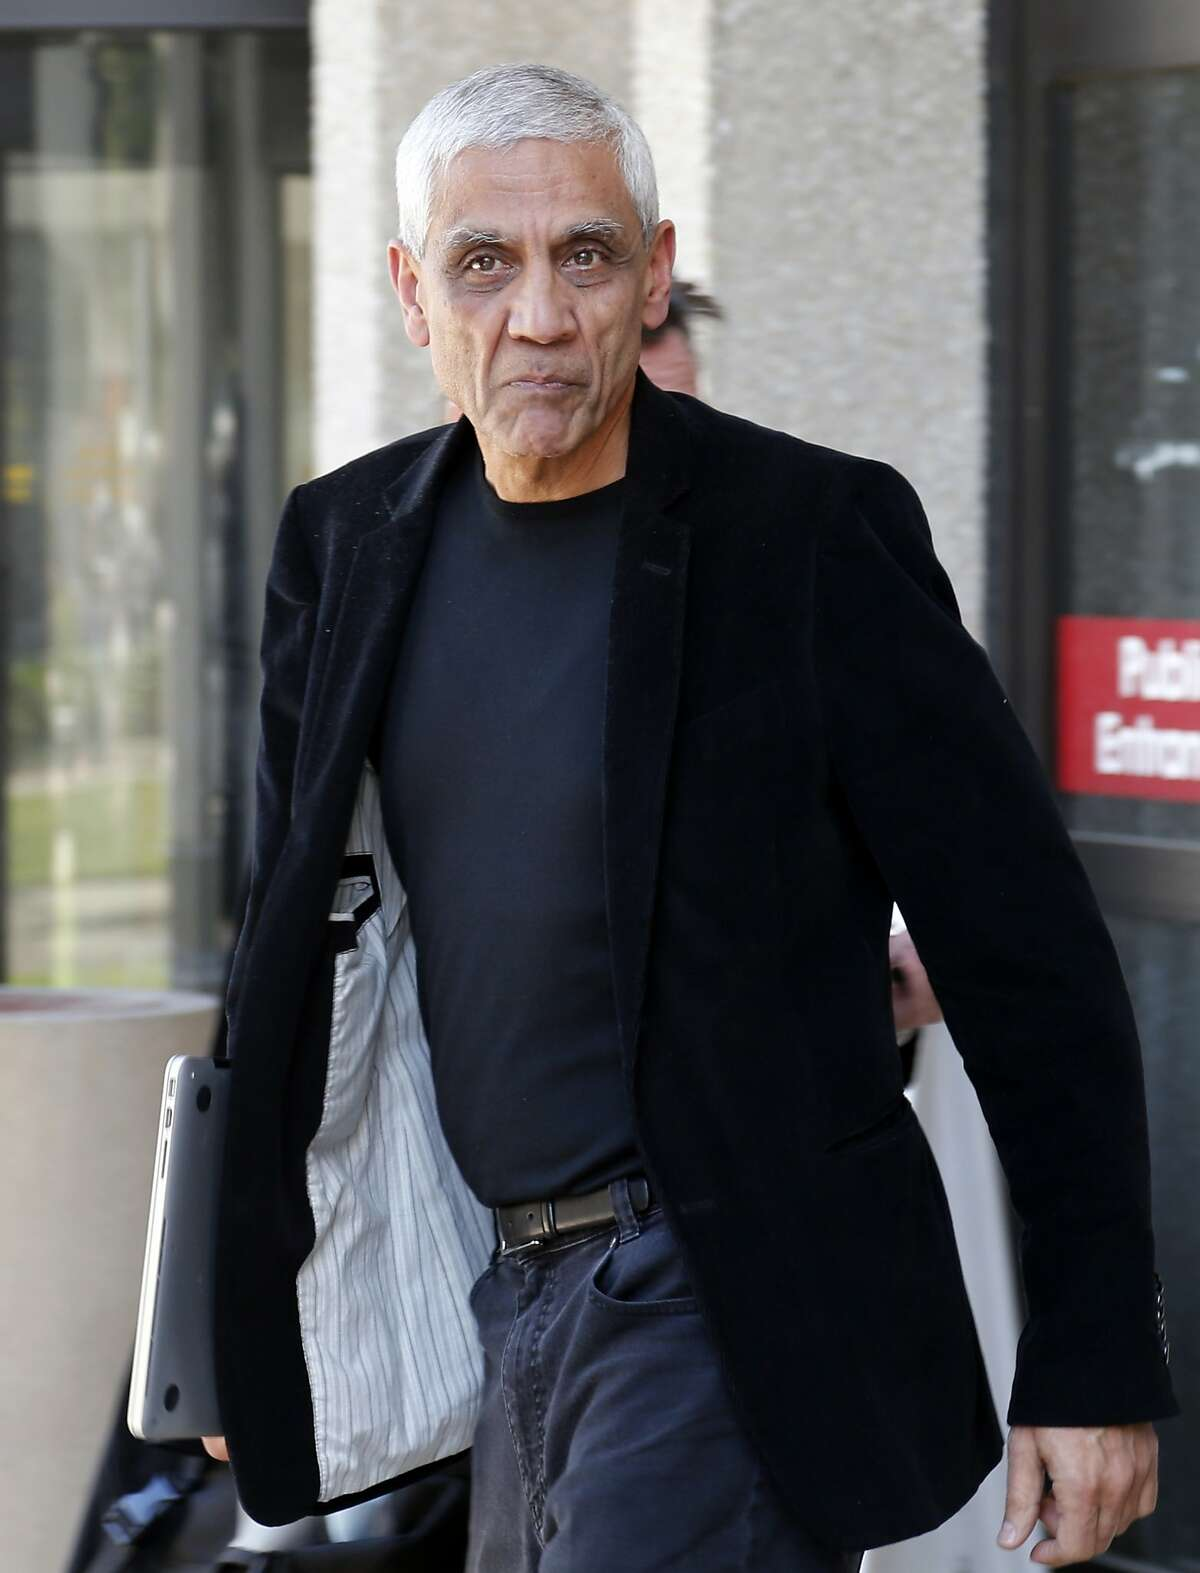 Sun Microsystems co-founder Vinod Khosla said about rental prices in San Francisco: